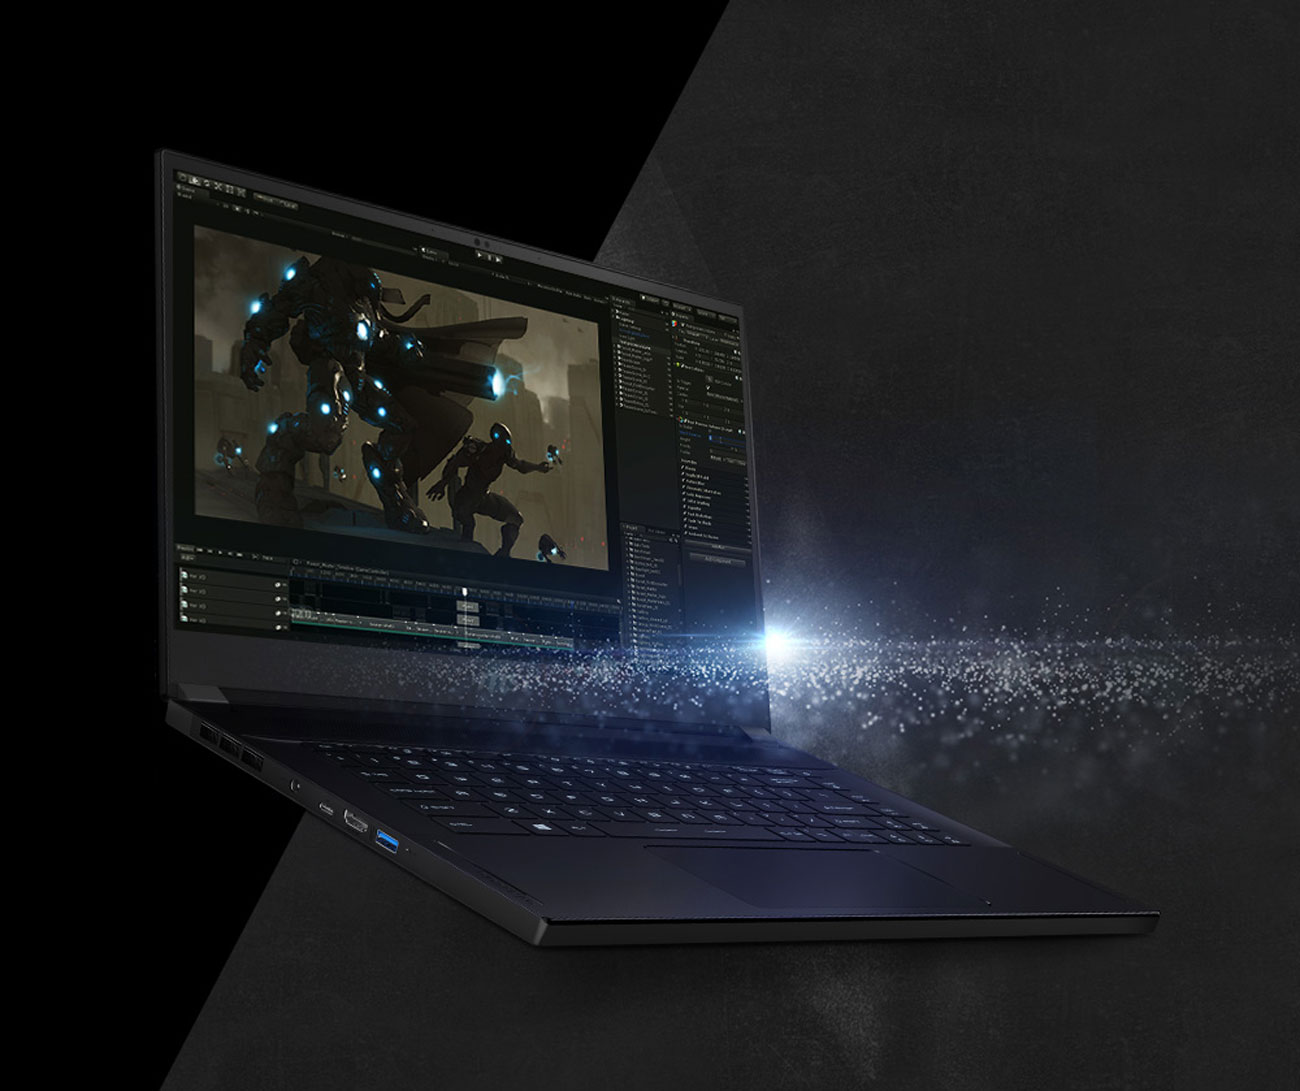 laptop with a game screenshot as screen